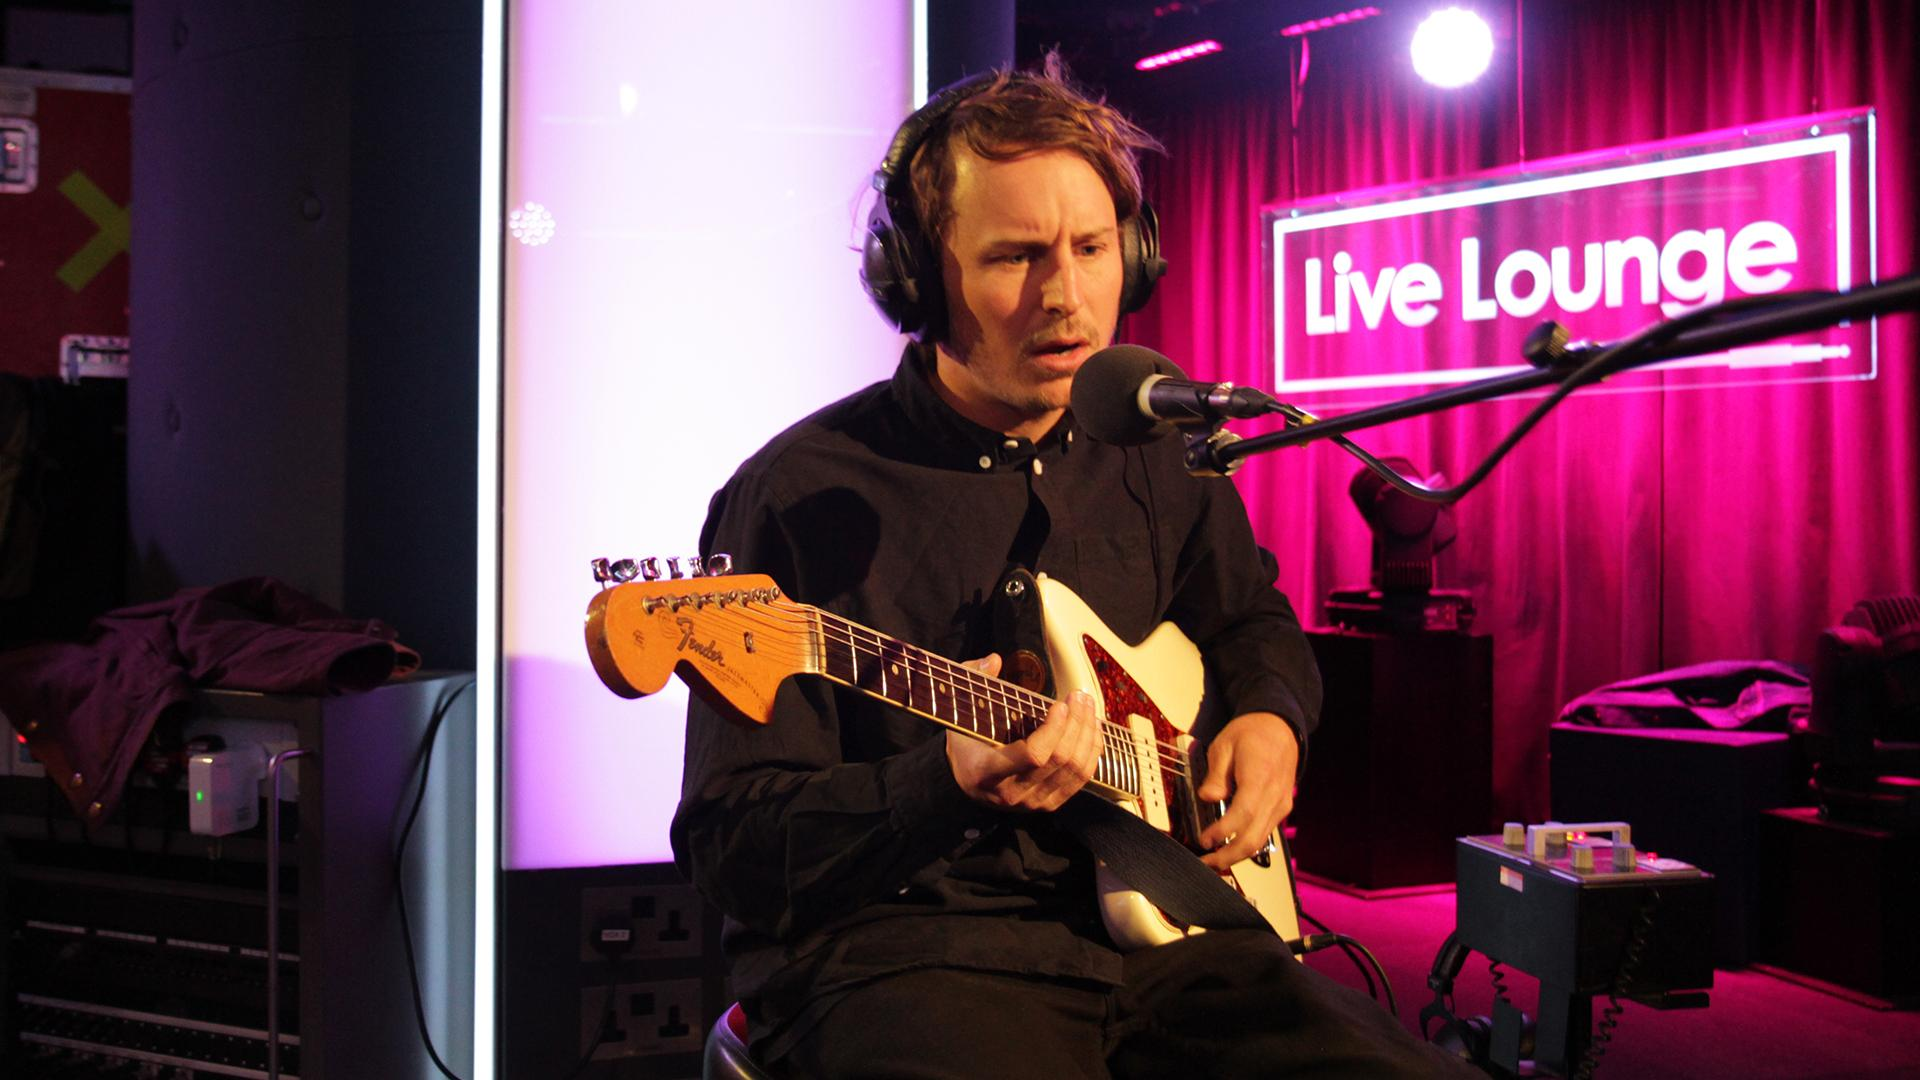 RT @BBCR1: .@benhowardmusic's here for Fearne's last Live Lounge! His cover is going to be incredible, trust us! #R1BenHoward http://t.co/H…